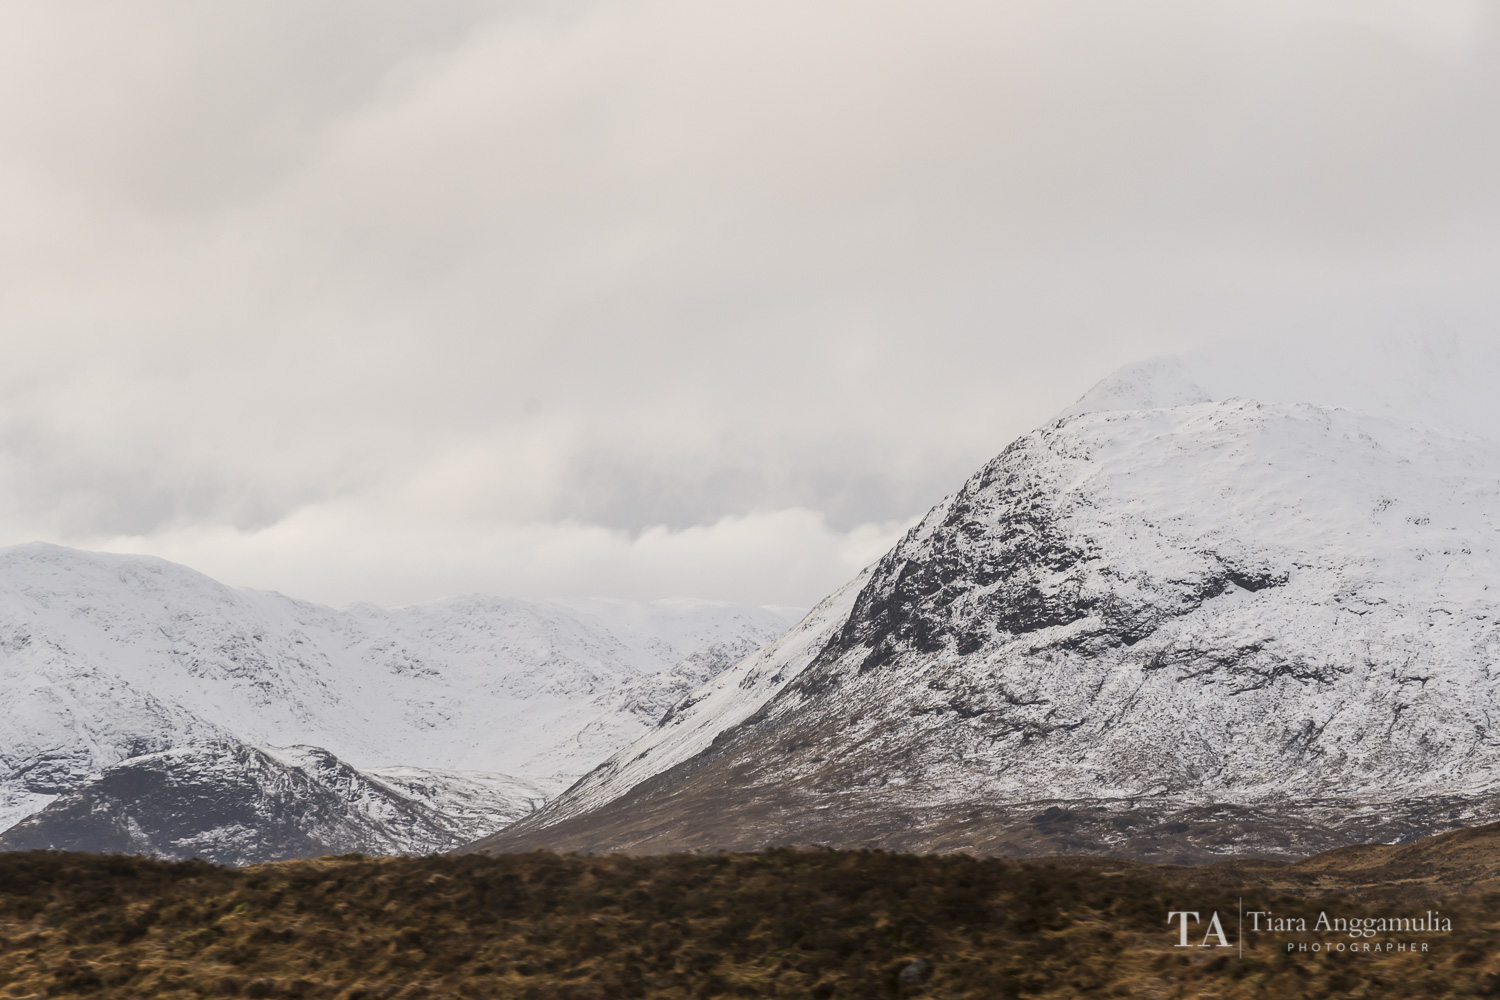 A view towards the snow peaks in Glencoe.